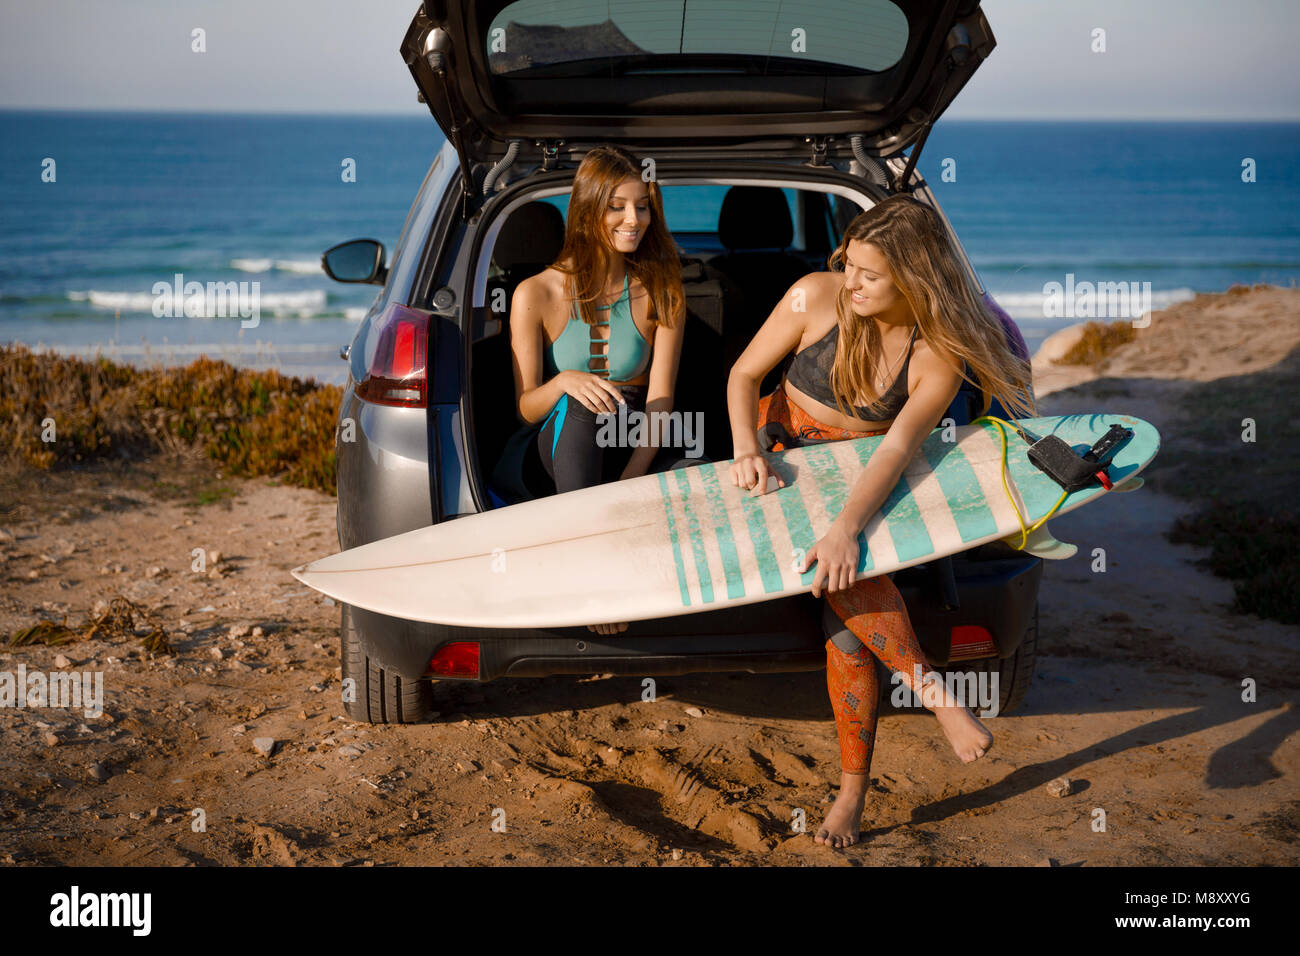 Two beautiful surfer girls sitting on the trunk of car getting ready for surfing - Stock Image